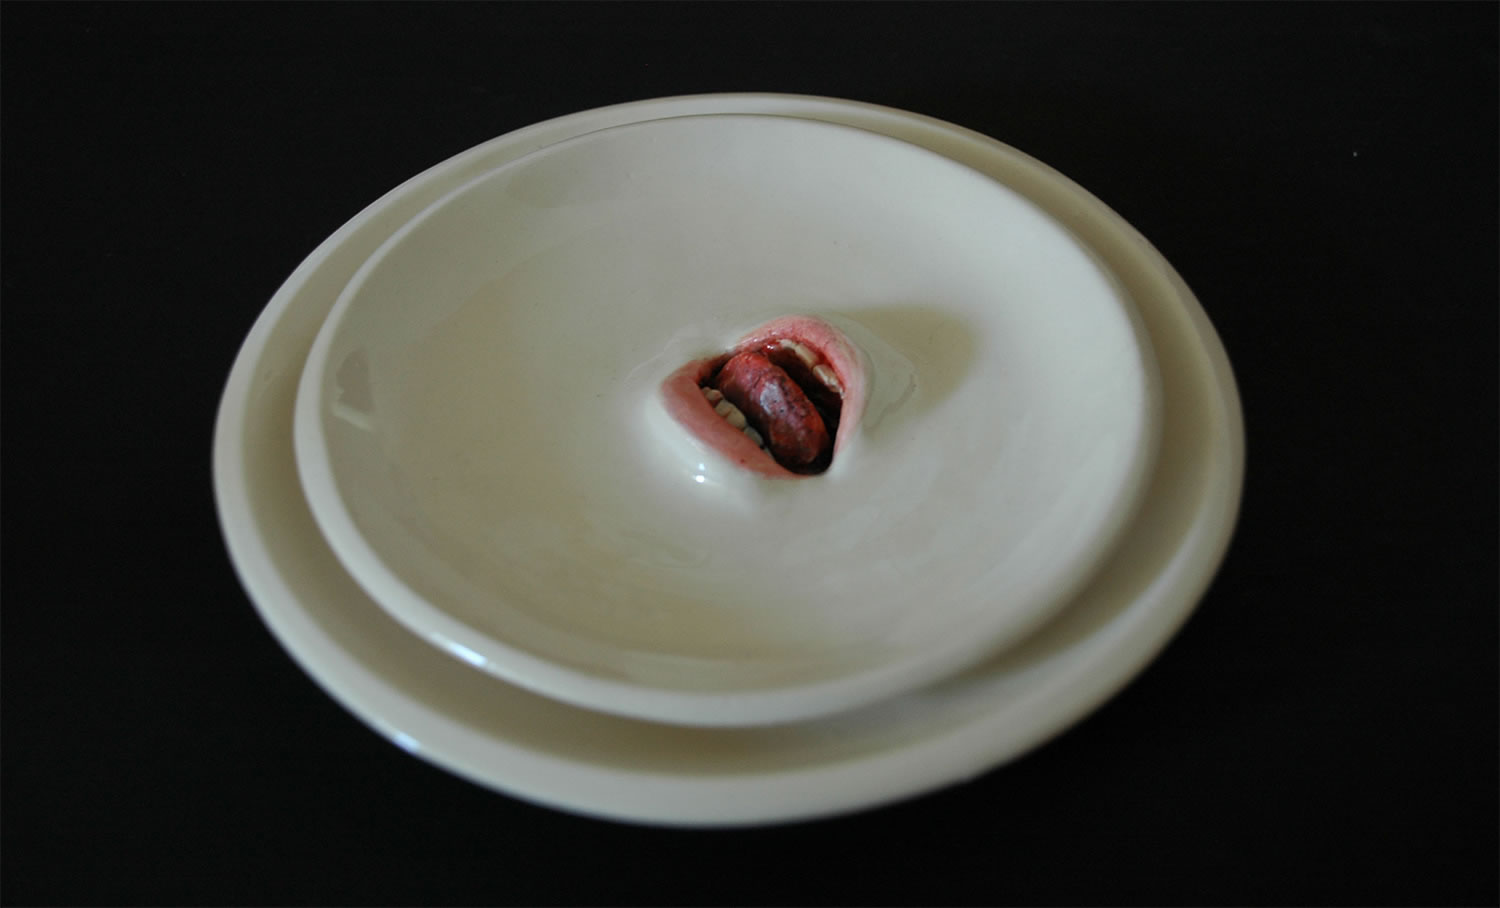 realistic lips emerging from plate, art by Ronit Baranga